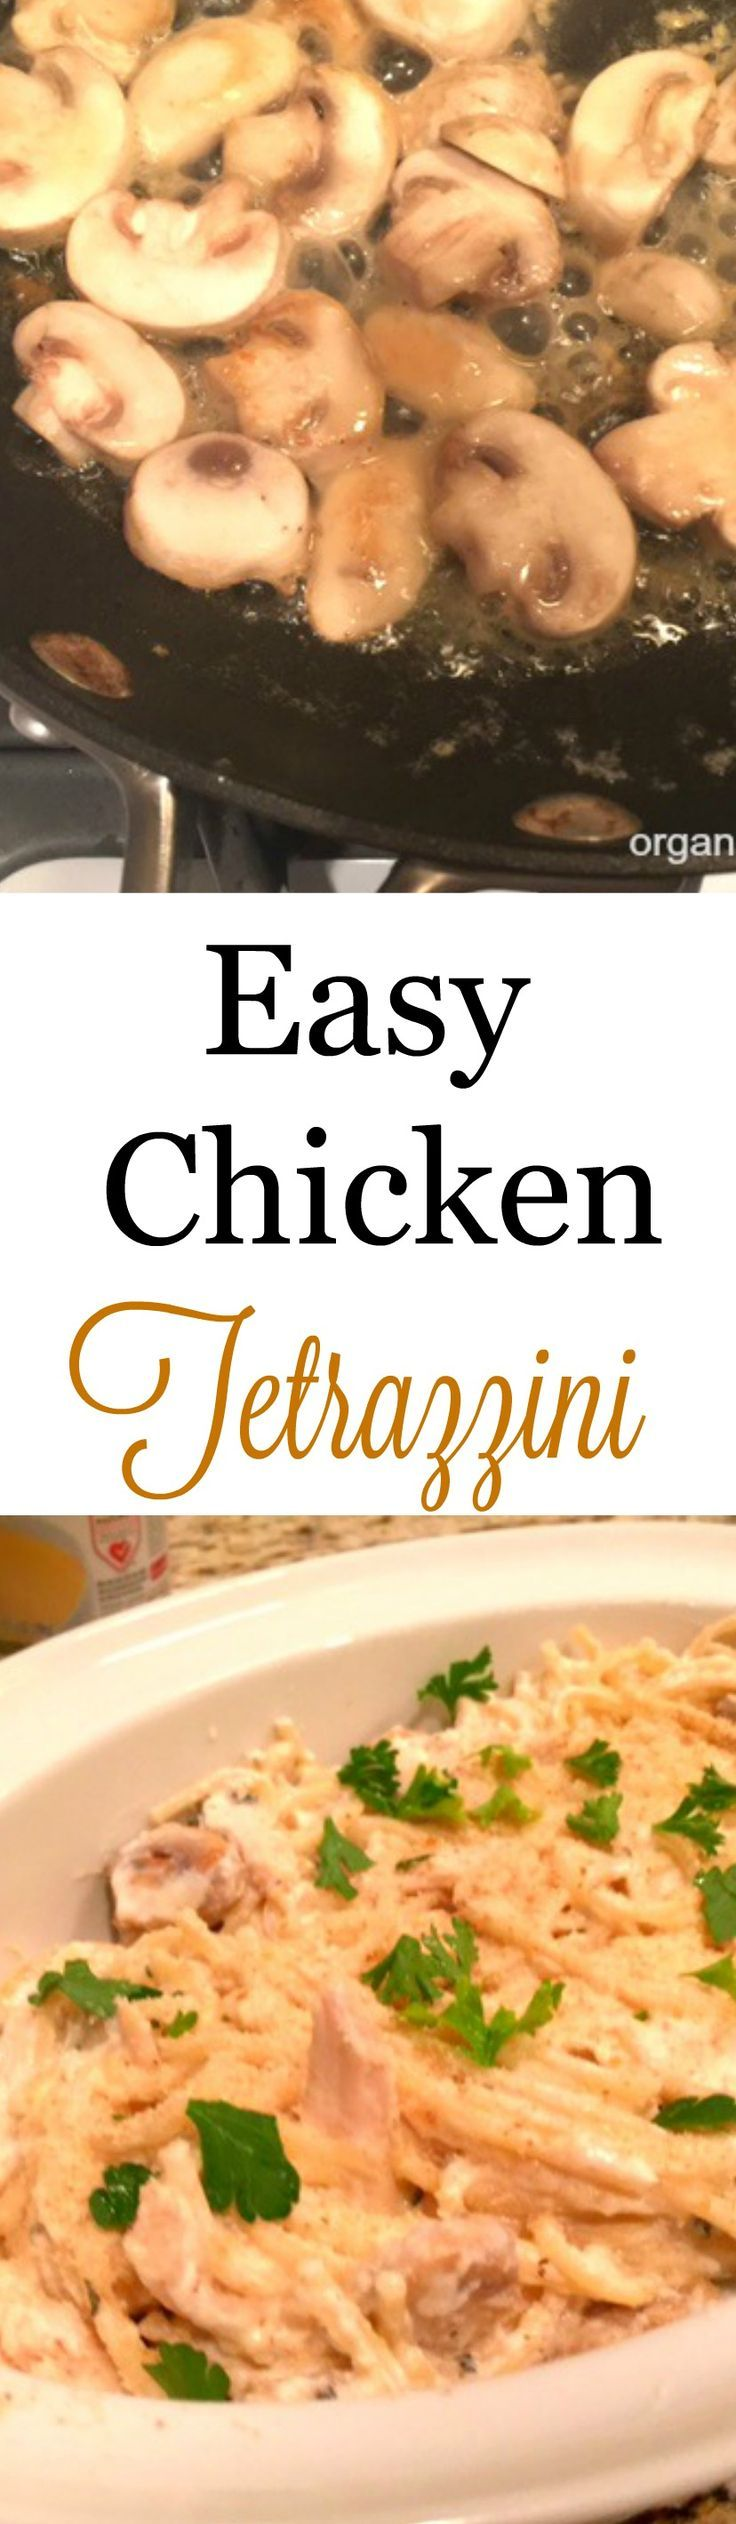 Warm up those evenings with this easy chicken tetrazzini recipe. Made with fresh ingredients and no condensed soup.